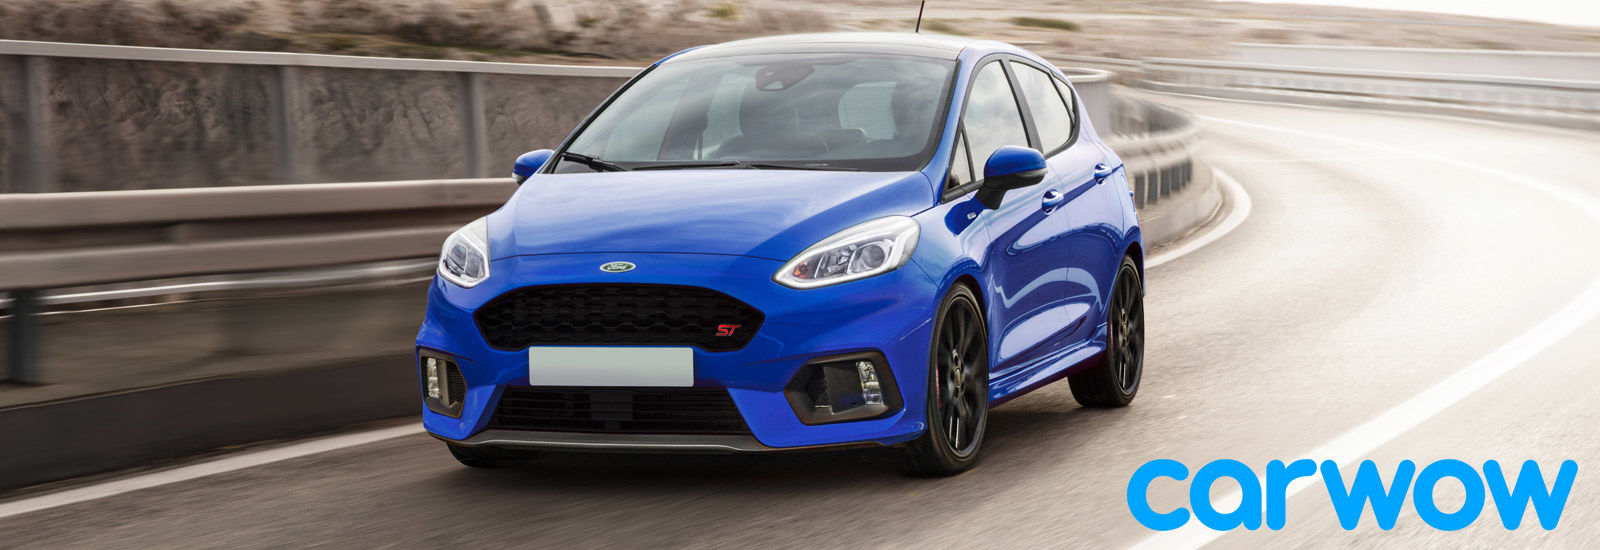 You can expect the new fiesta st to be available in some eye catching paint schemes and to arrive showing off an aggressive body kit with ground hugging